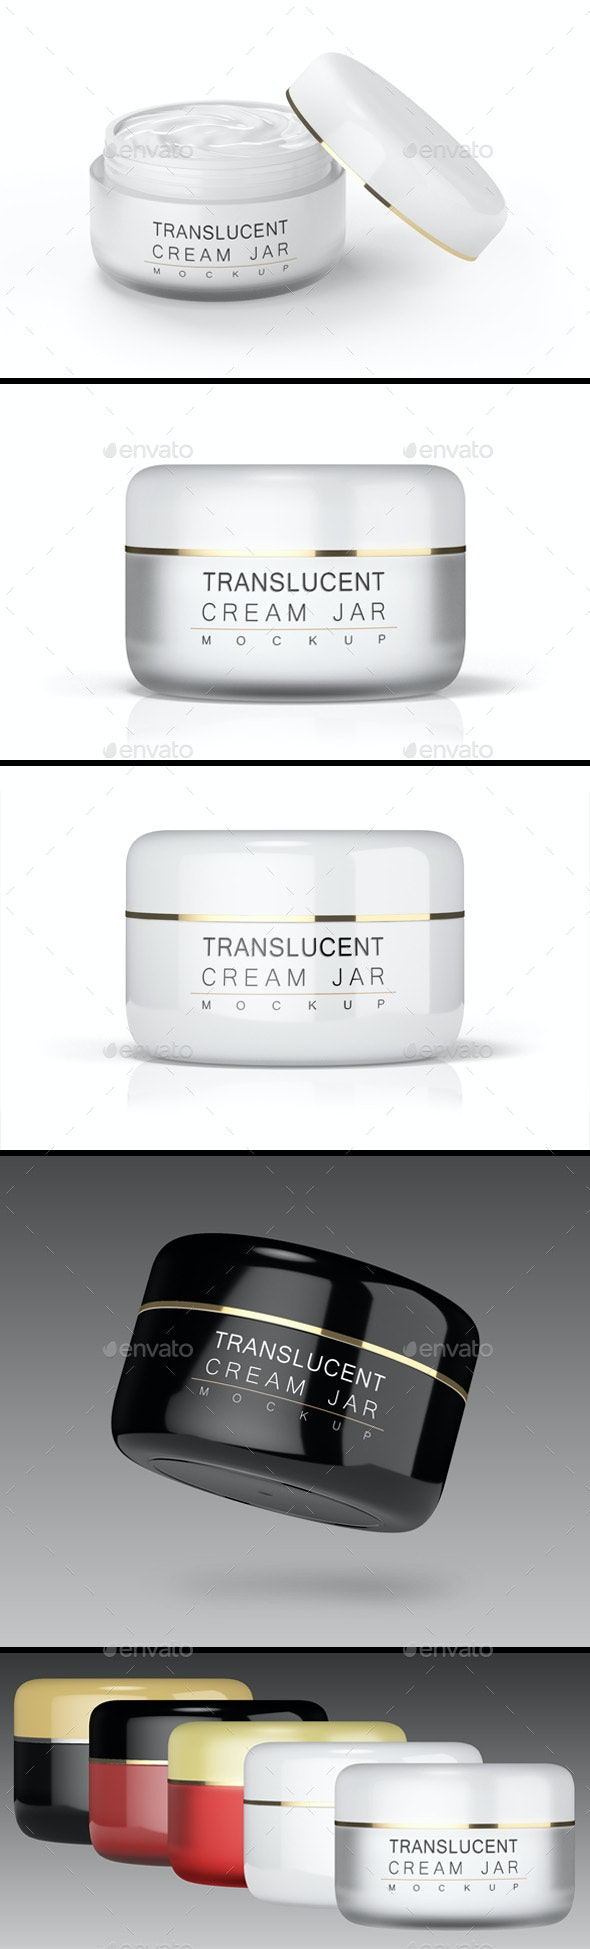 Cream Jar Mock-up (Solid and translucent) - Product Mock-Ups Graphics